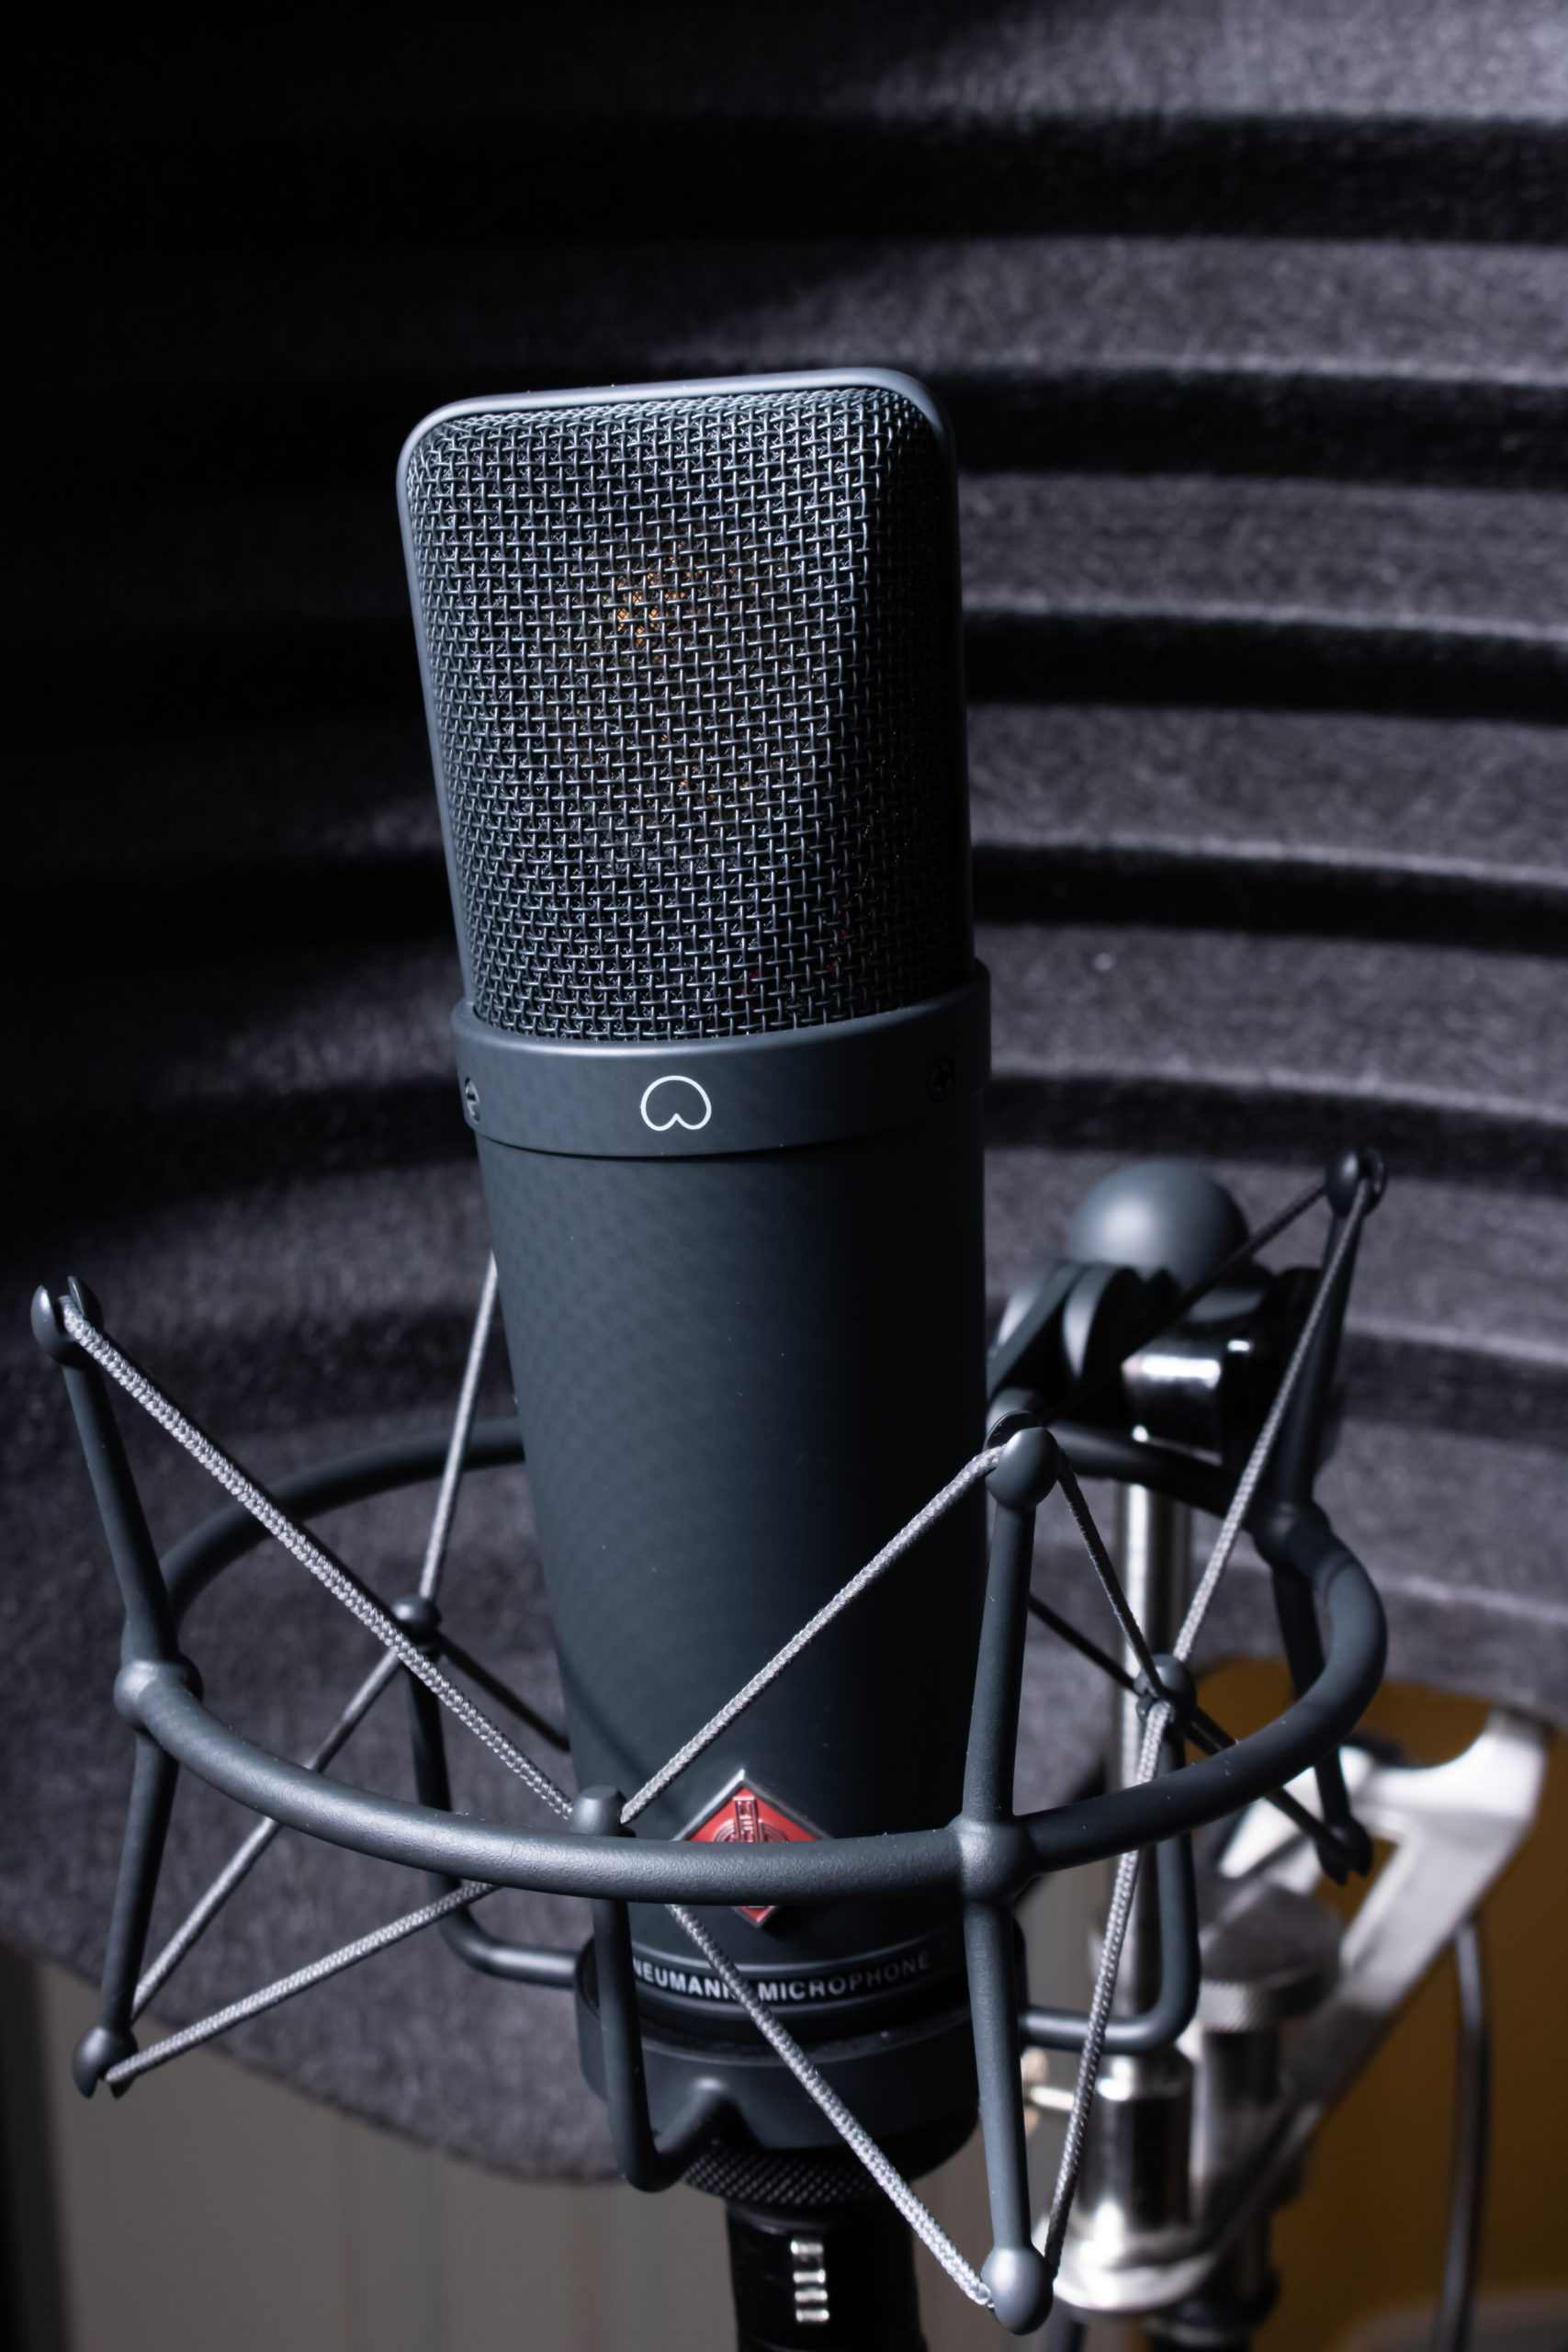 Christian & Gospel music production with Neuman TLM 197 microphone